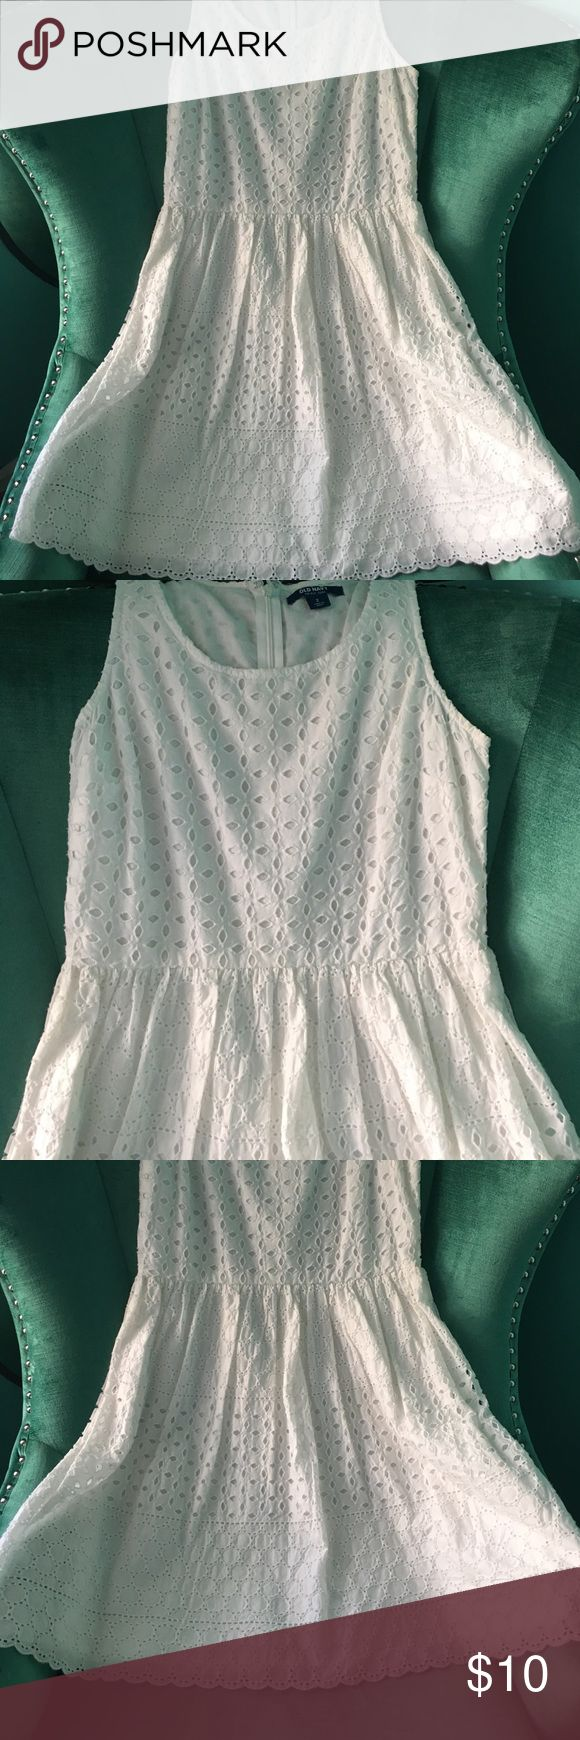 White Lace Dress White lace dress, never worn! Size 2 from Old Navy. Perfect for summer or any outdoor event. Match it with a colorful cardigan and necklace! Old Navy Dresses Midi